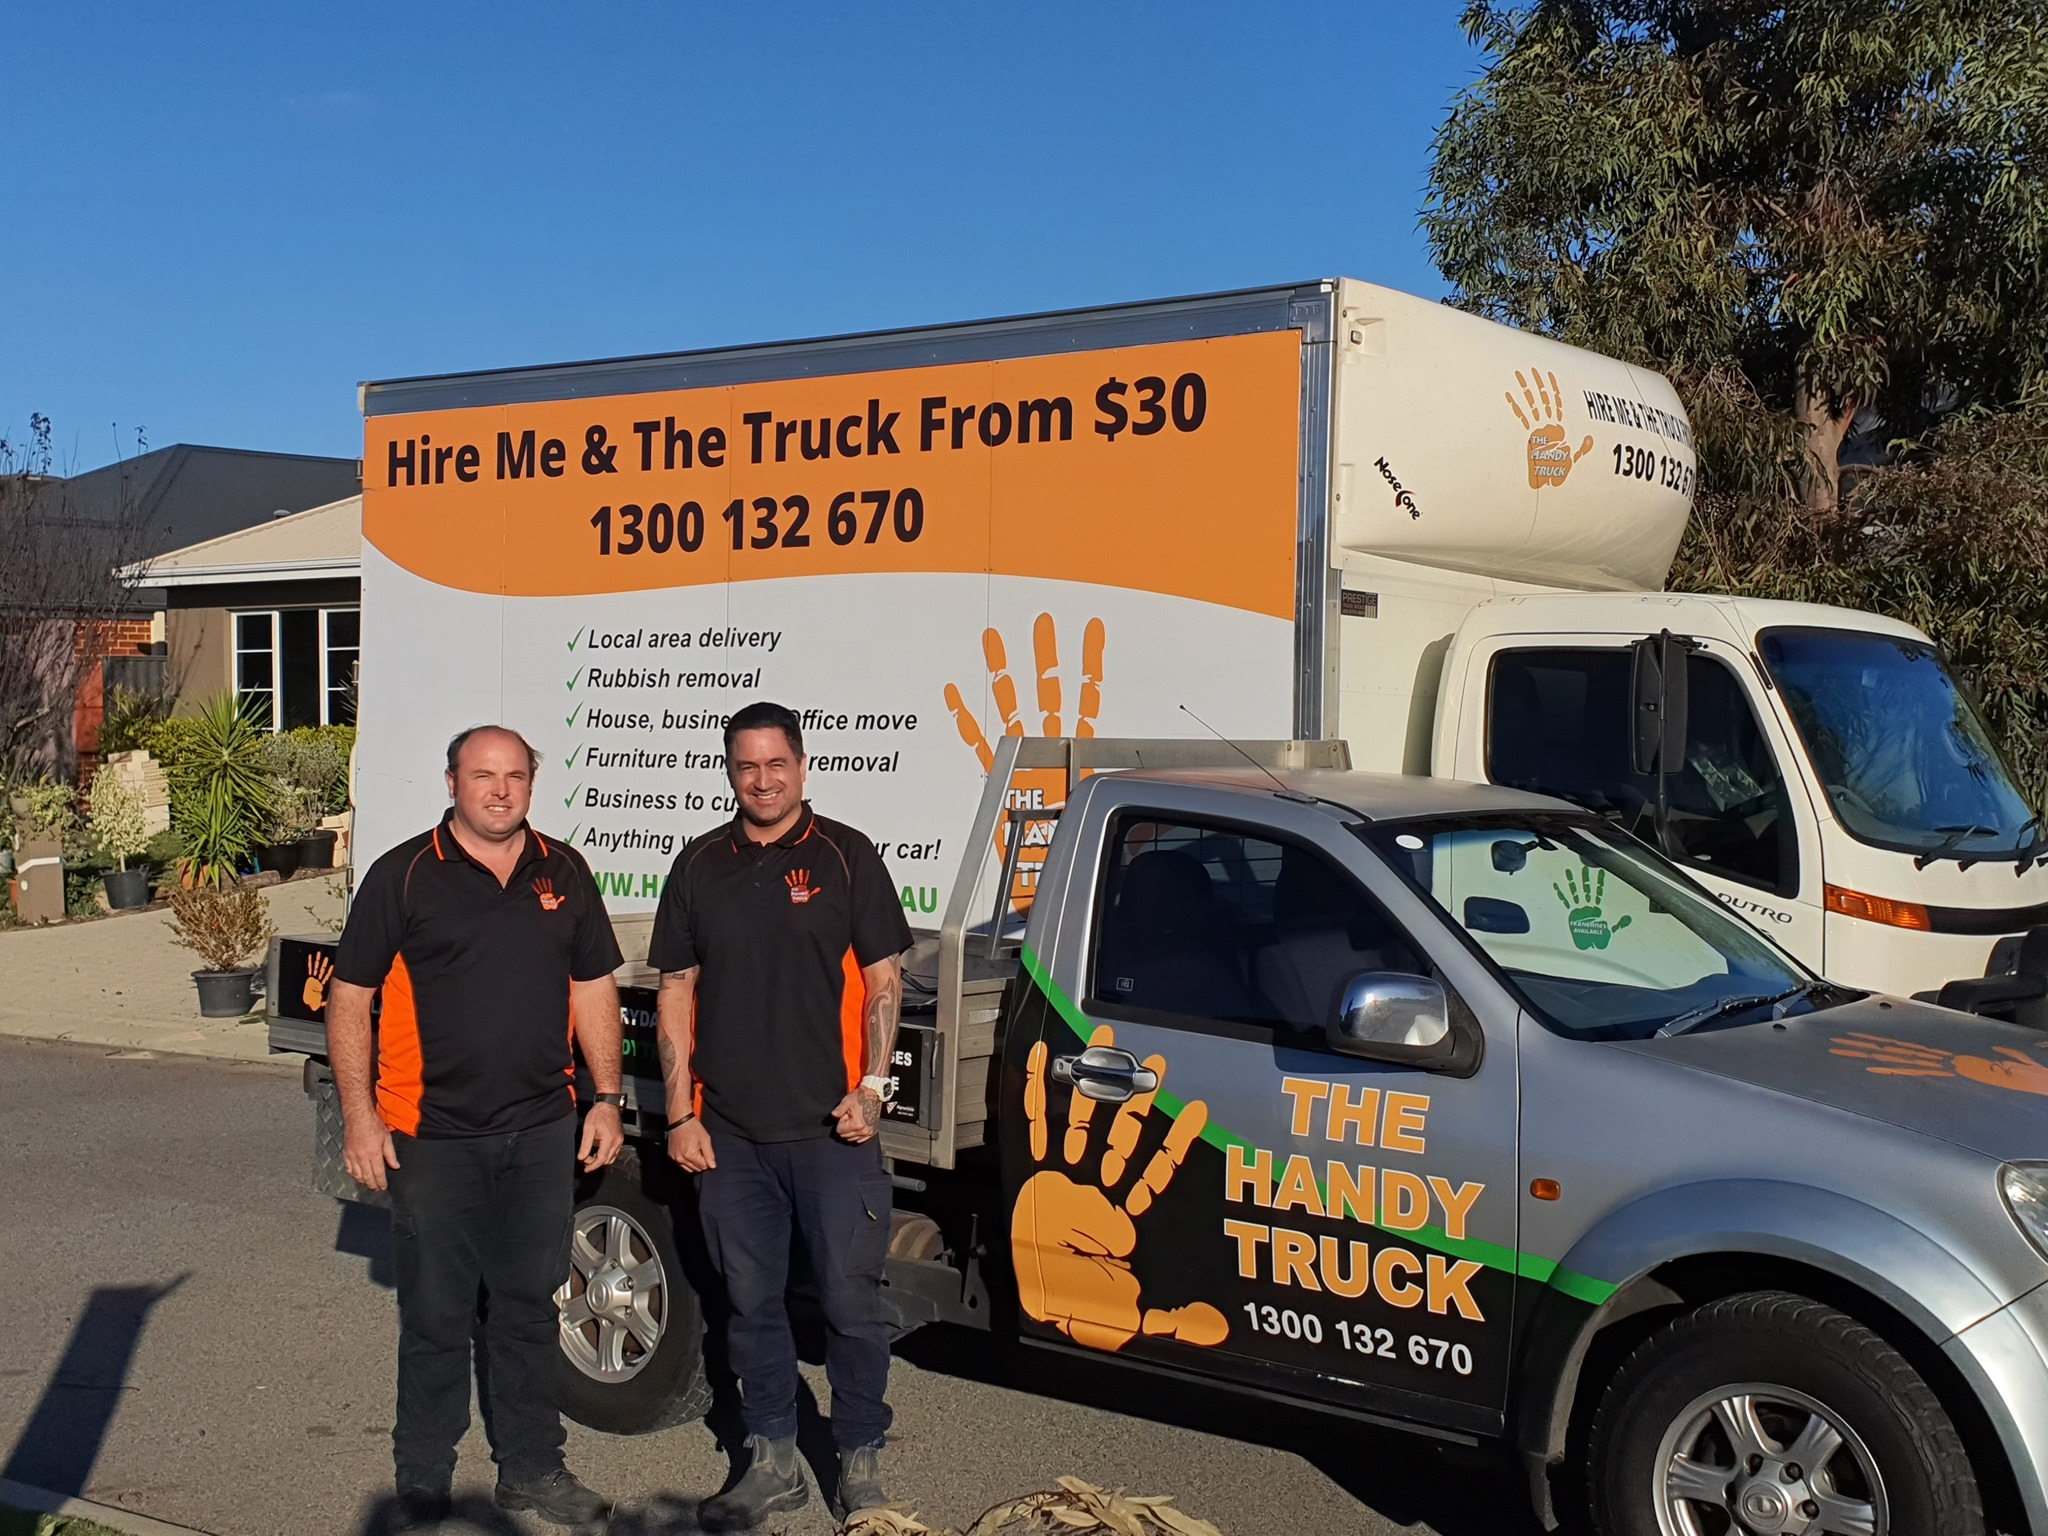 Your delivery and removalist service in Melton